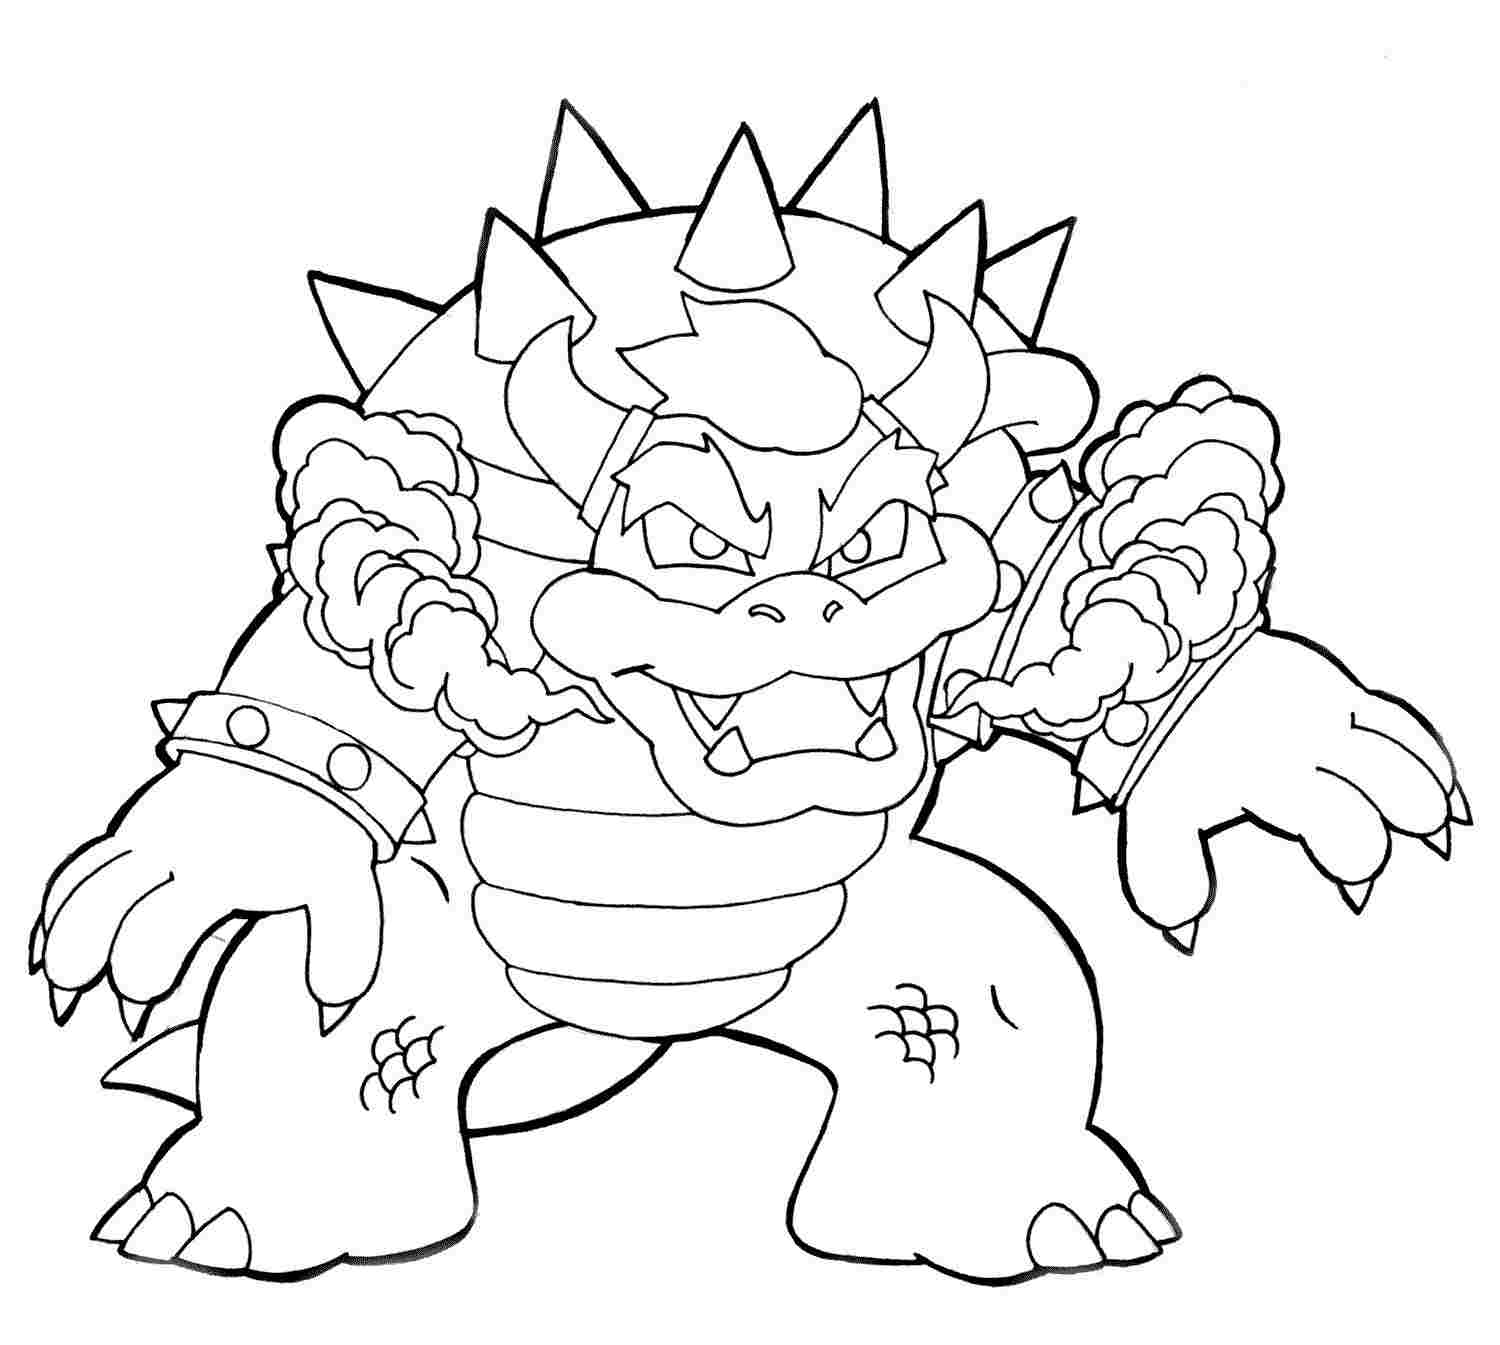 Dangerous Bowser From Super Mario Bros Coloring Page